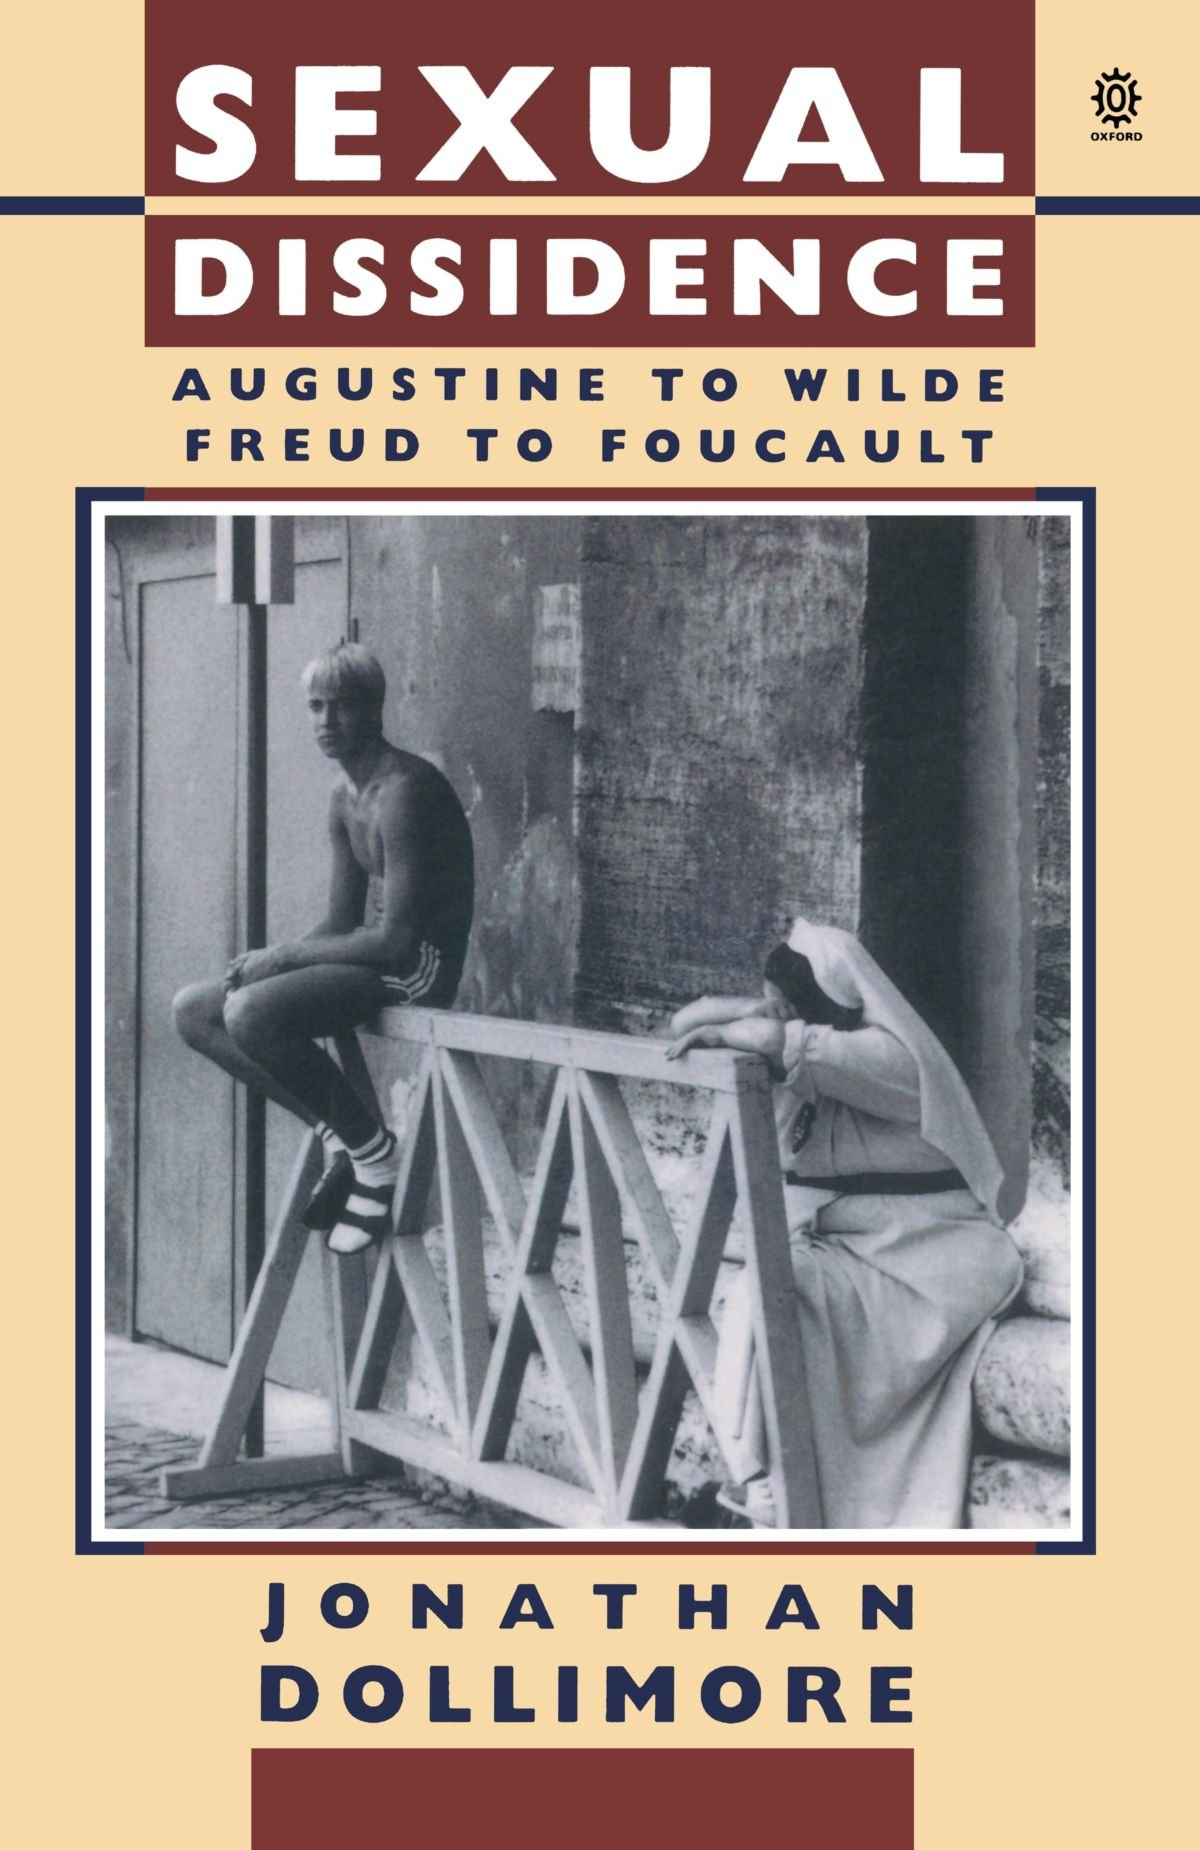 Sexual Dissidence: Augustine to Wilde, Freud to Foucault by Oxford University Press